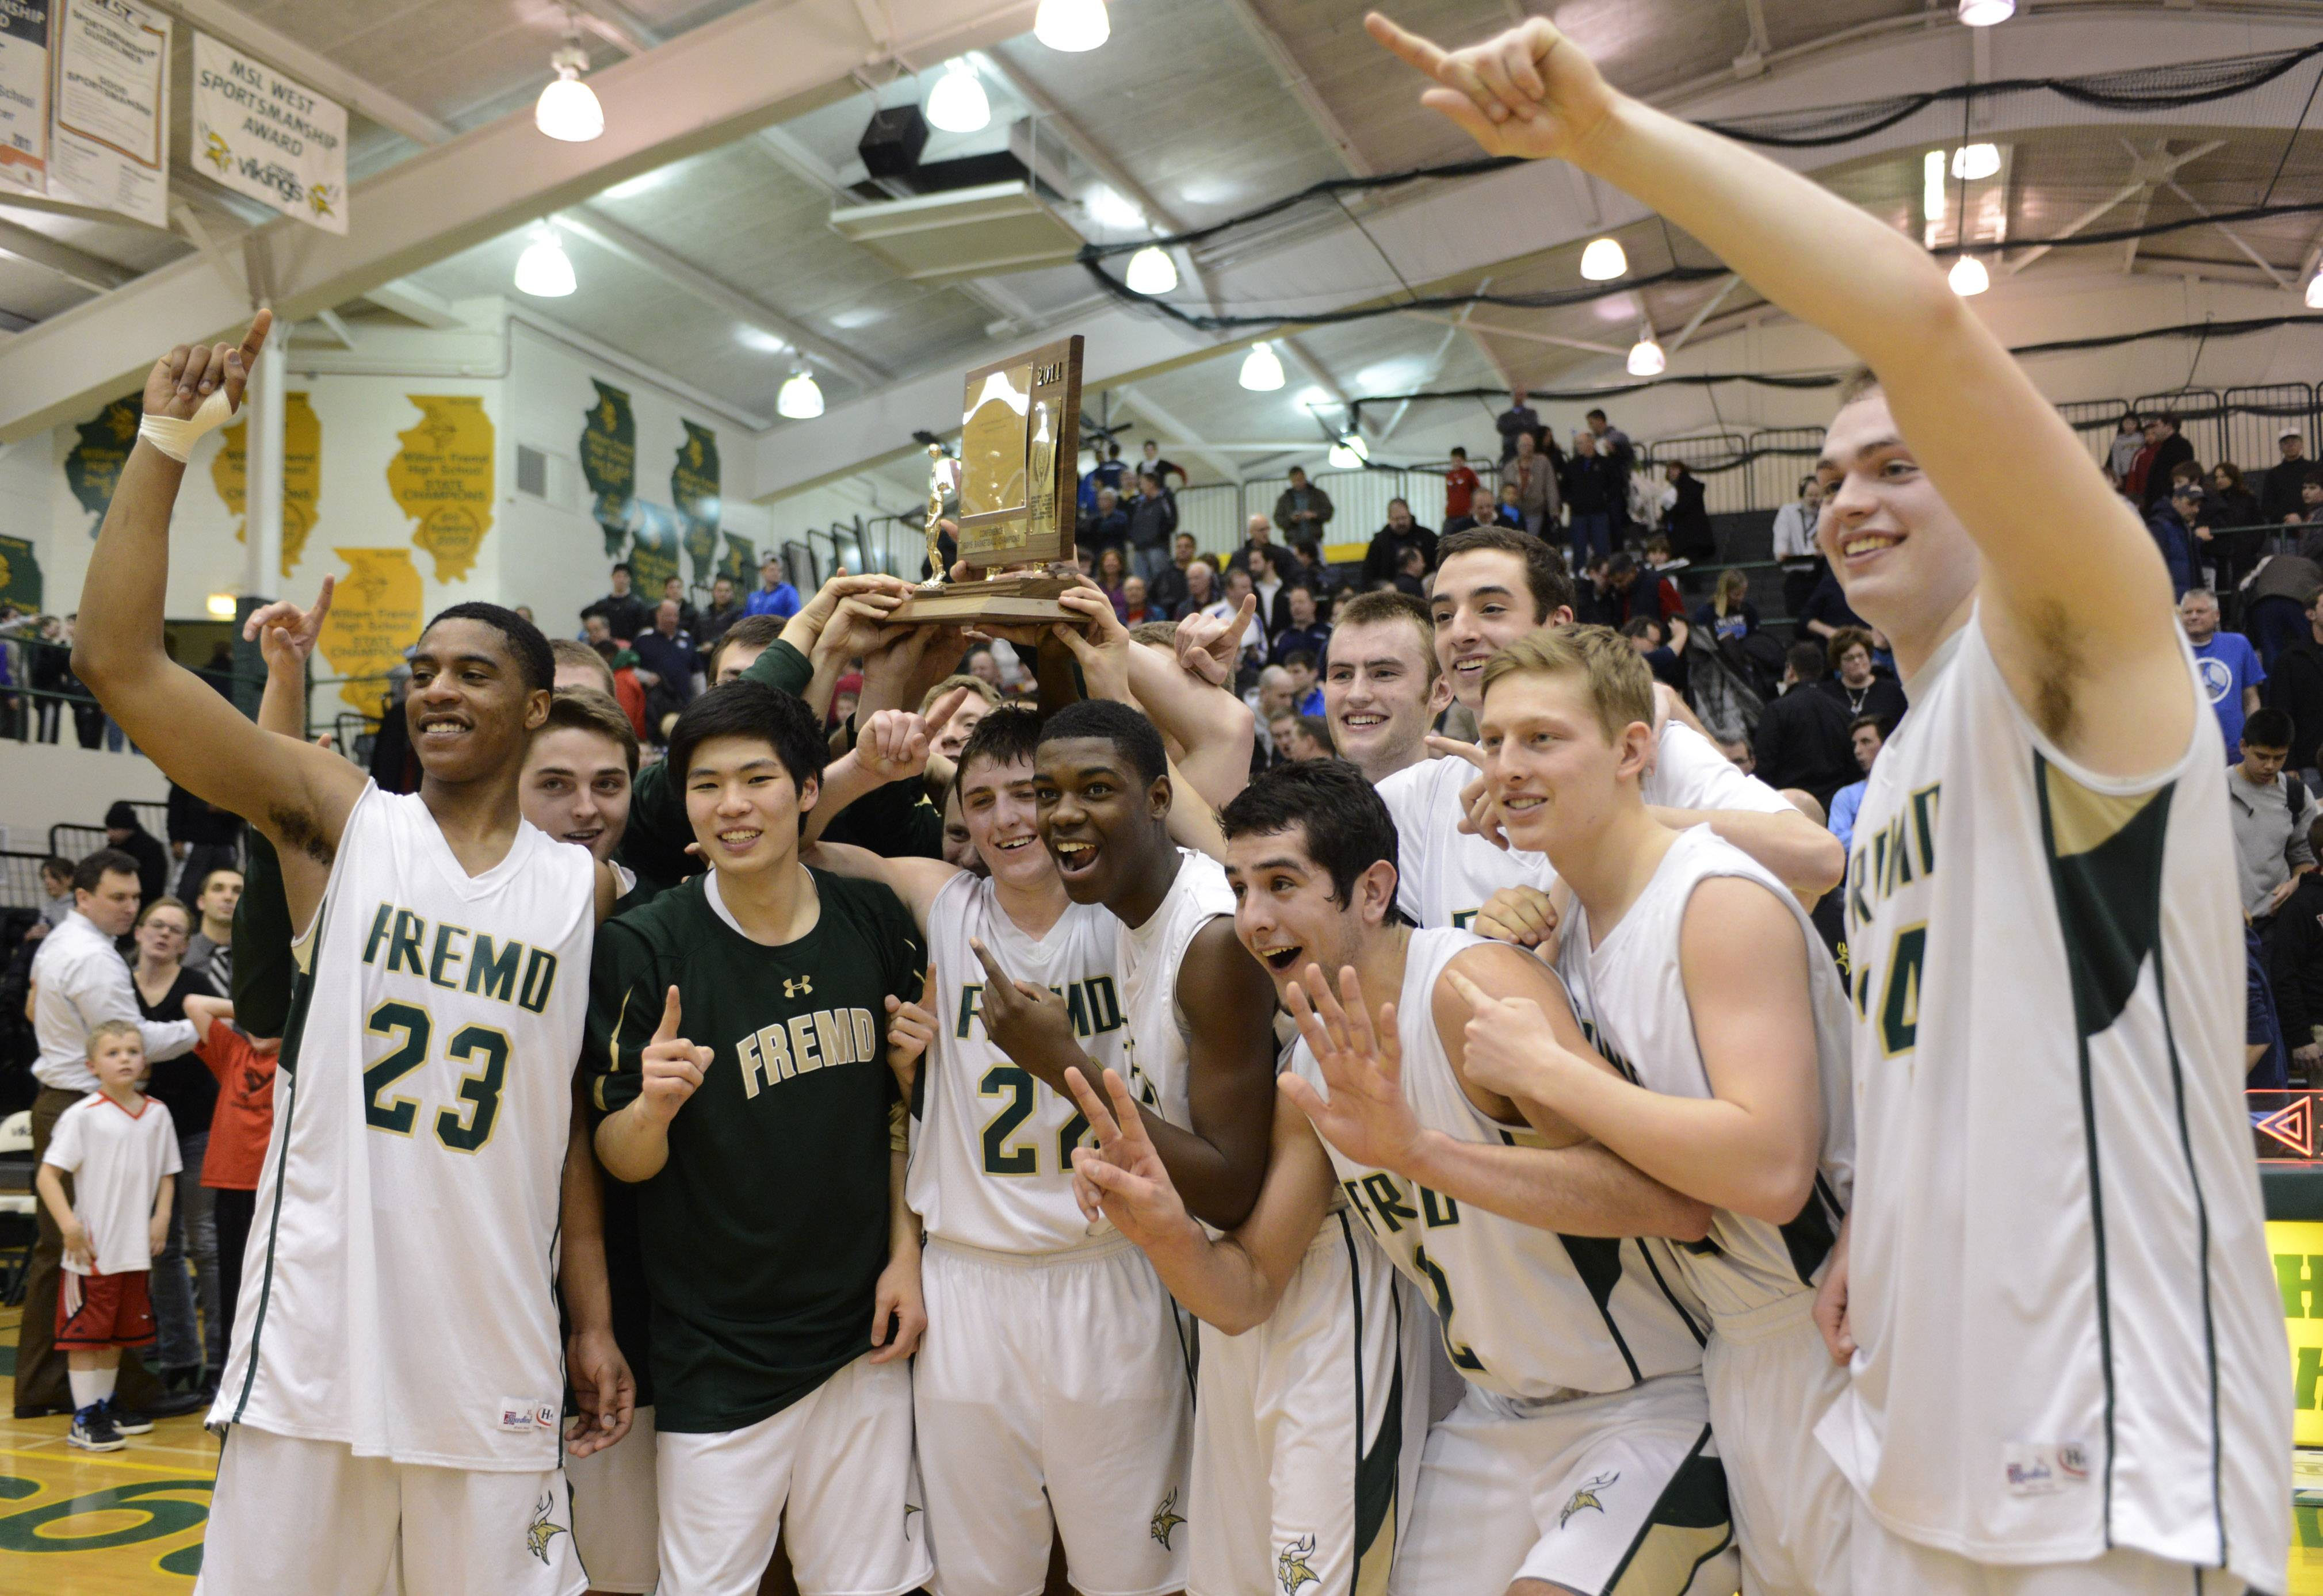 Fremd players hold their Mid-Suburban League championship trophy after defeating Prospect in the title game 55-52 on Wednesday in Palatine.